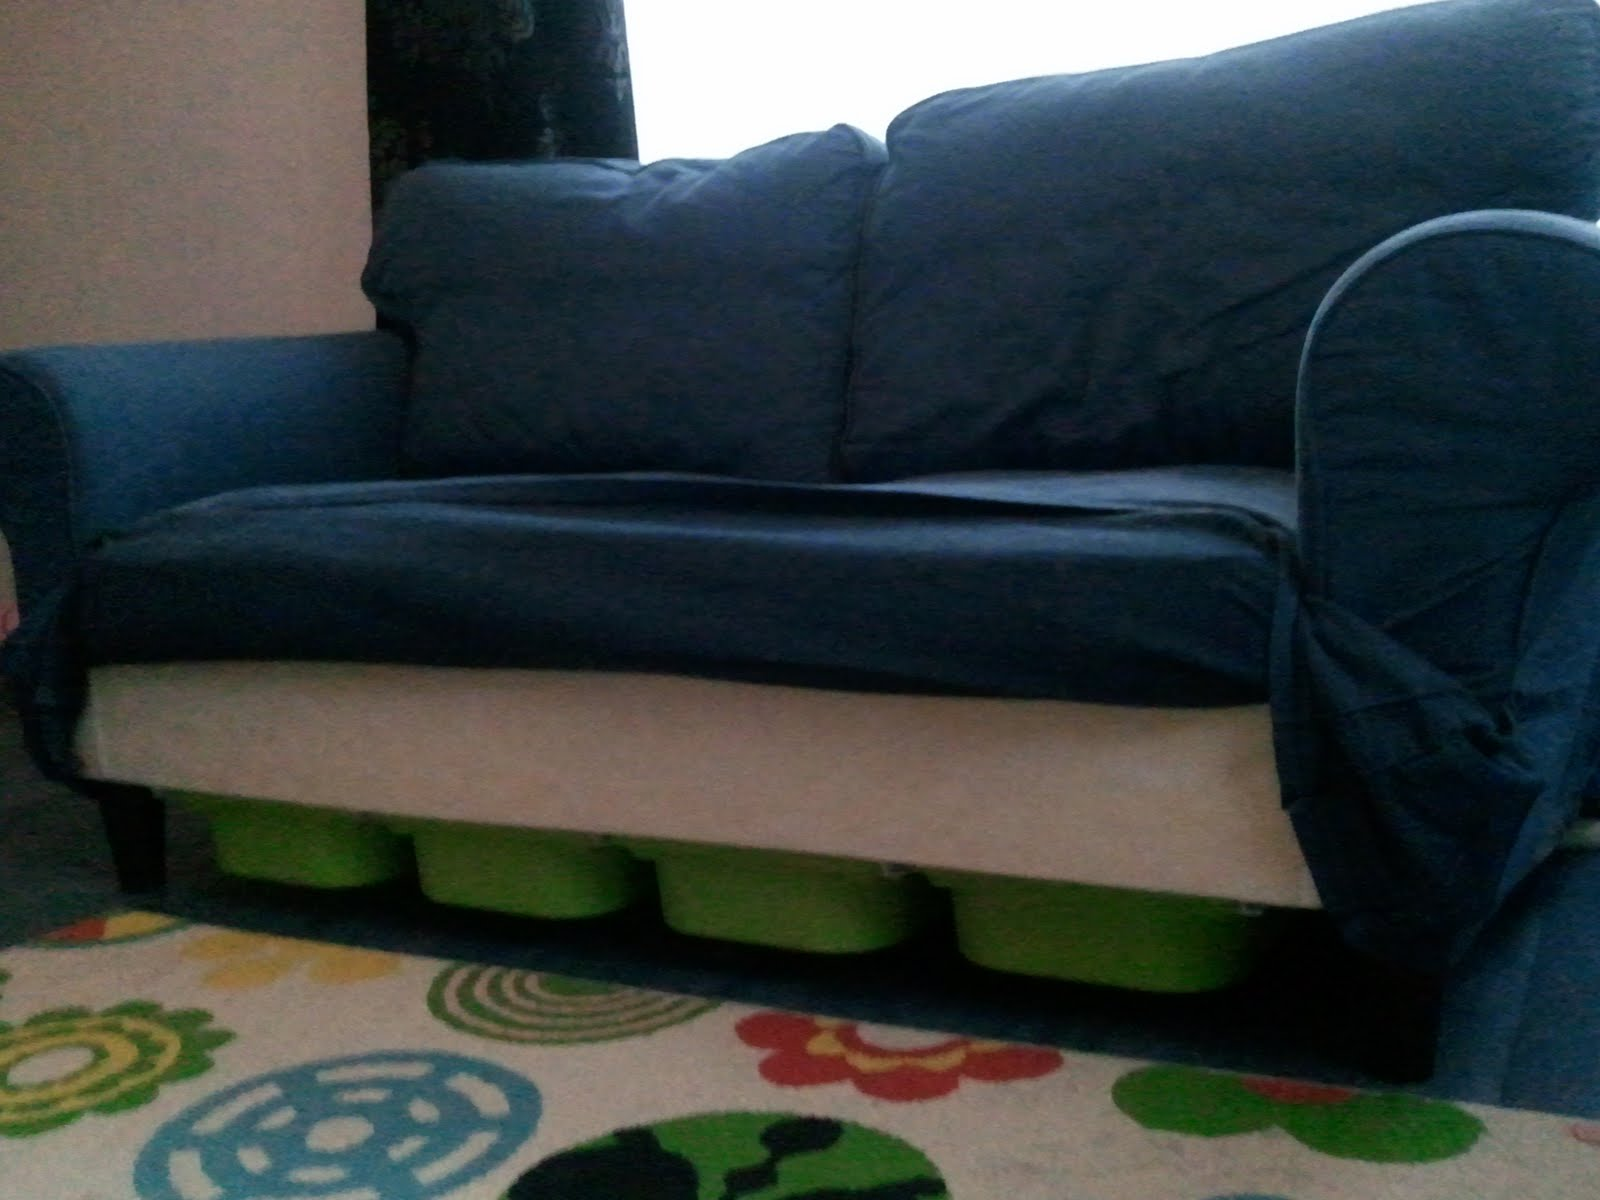 Full Size of Ektorp Sofa Cover Uk Ikea With Chaise Slipcover Review 2 Seater Bed At Instructions Cushion Dimensions Microfaser Garten Ecksofa Modulares Sofort Lieferbar Sofa Ektorp Sofa